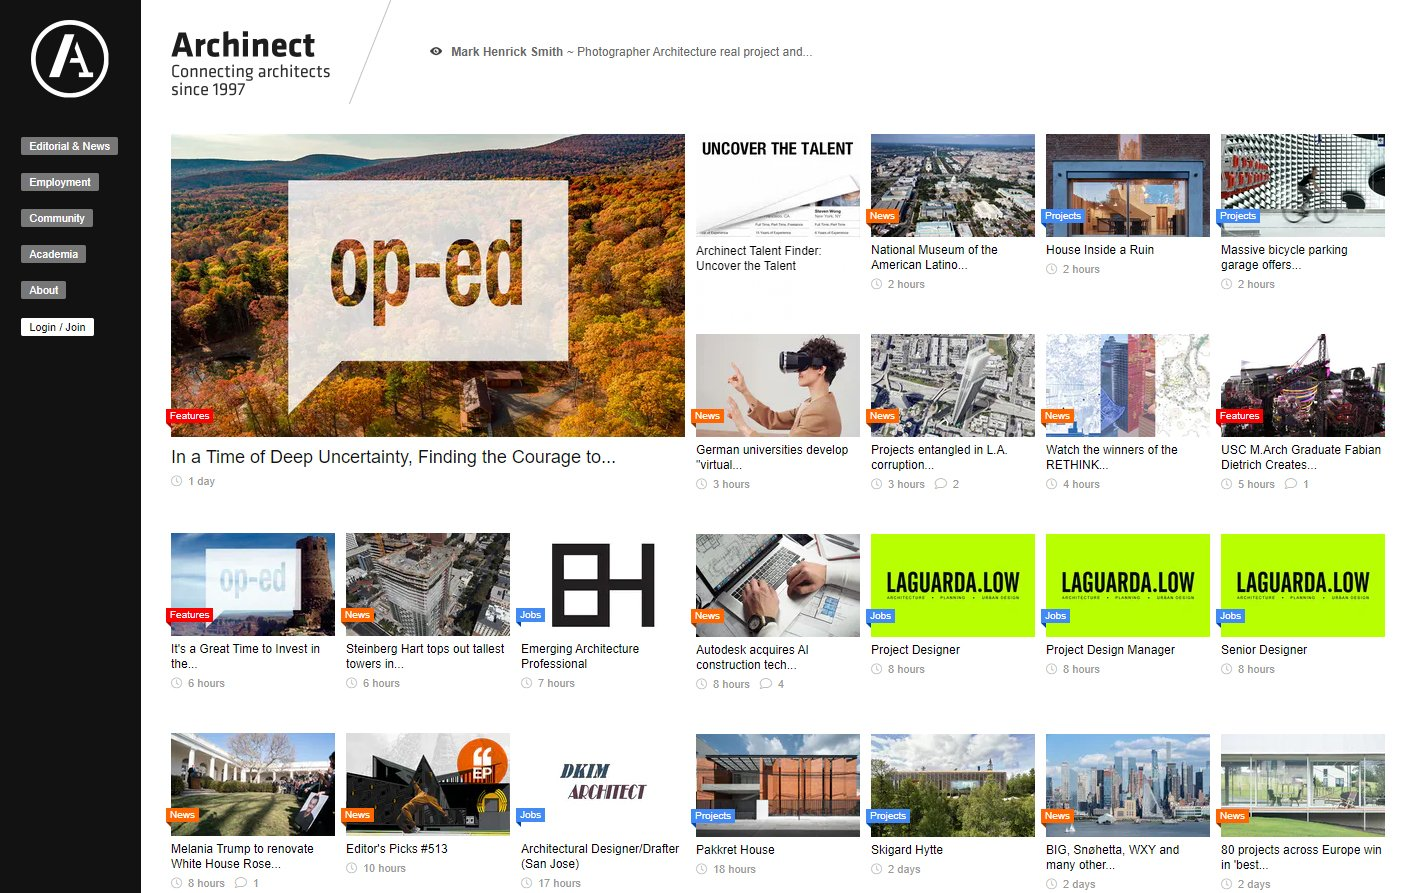 Getting Inspired for Designs on Archinect